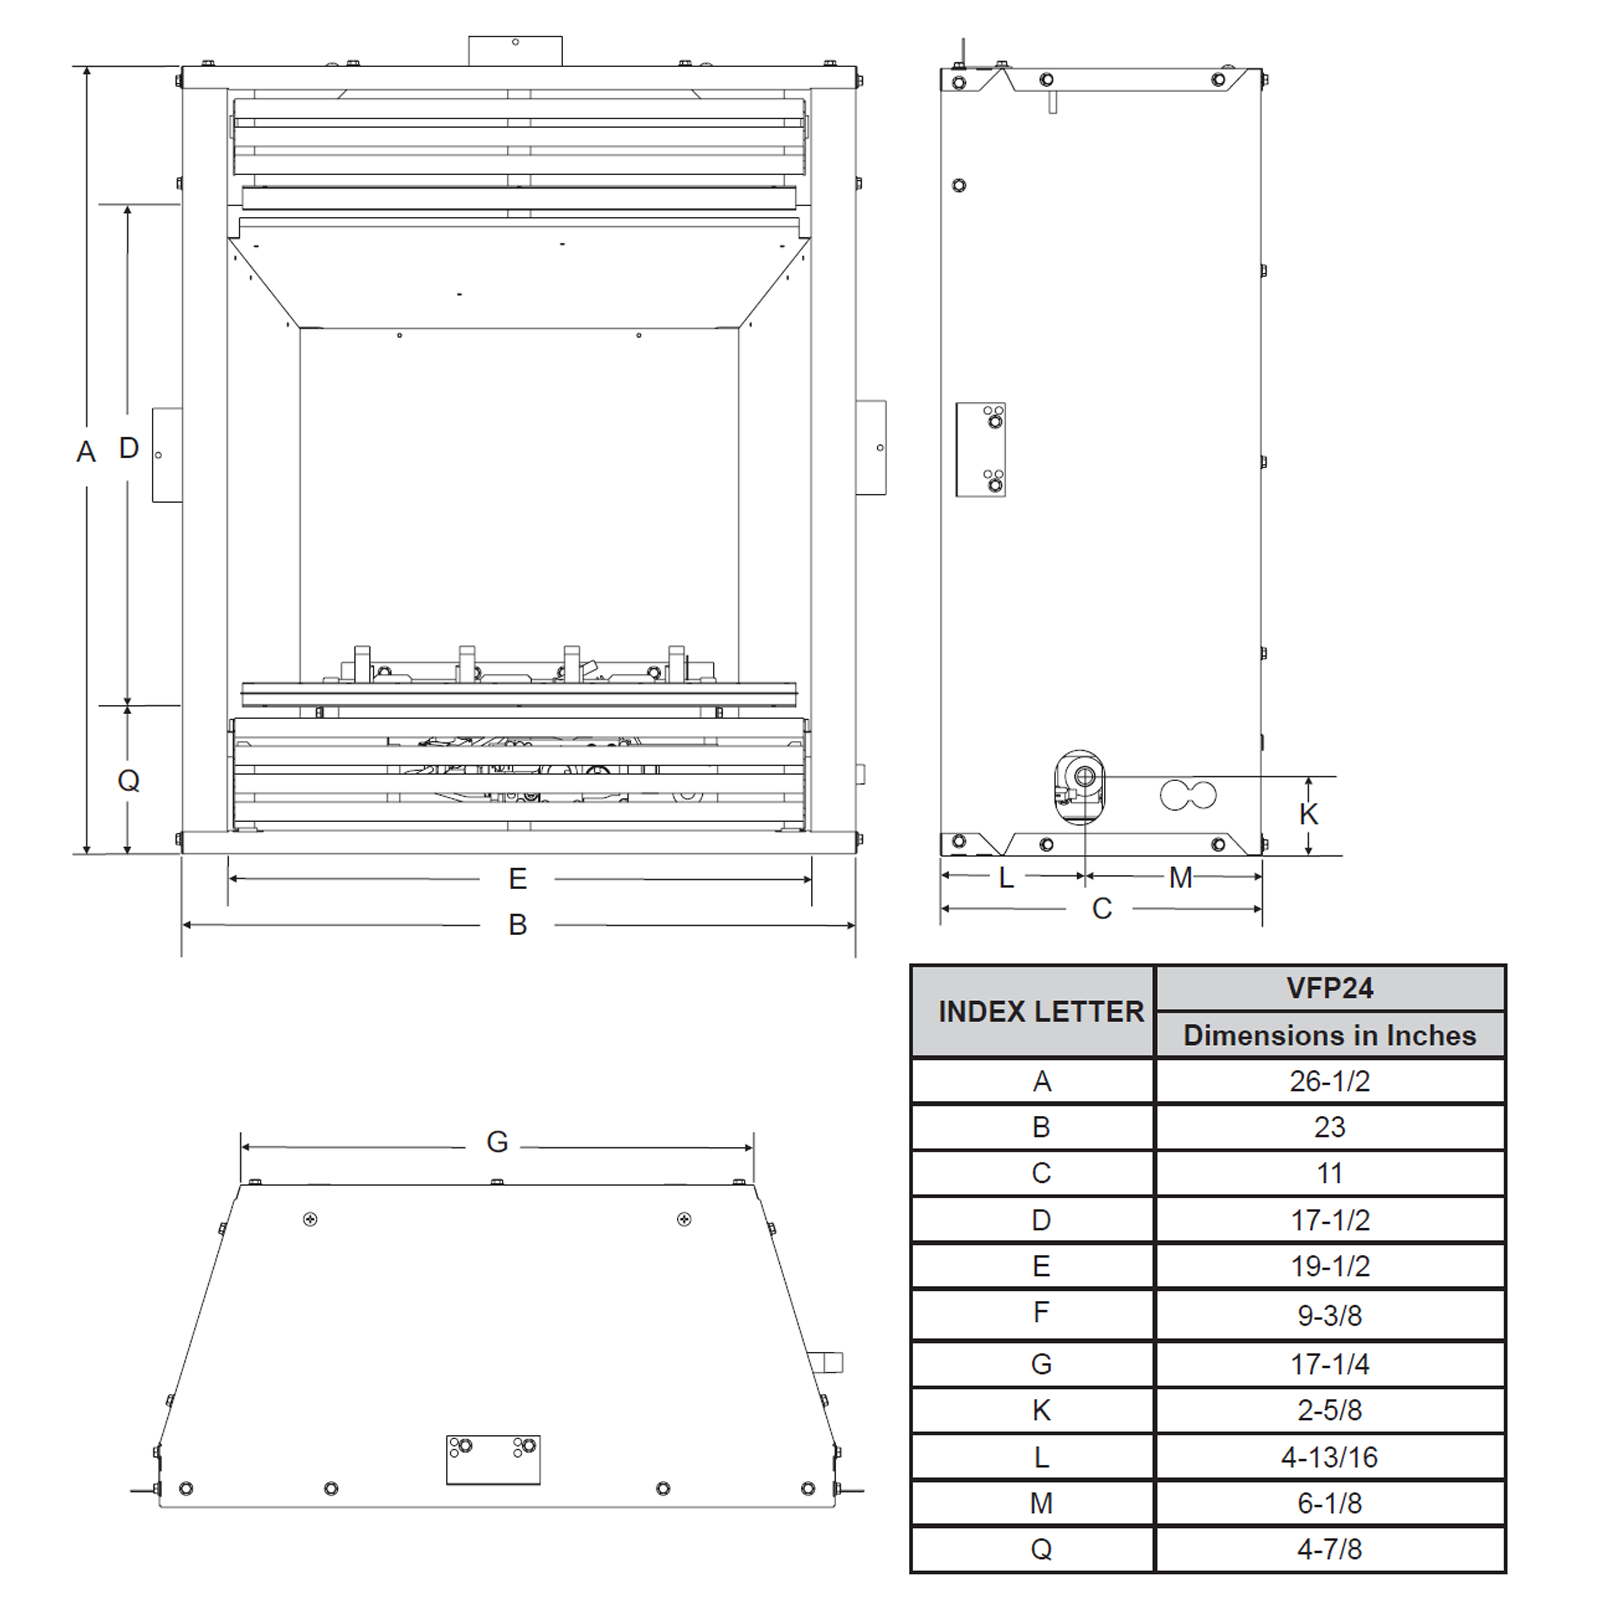 VFP24 Technical Drawing 1